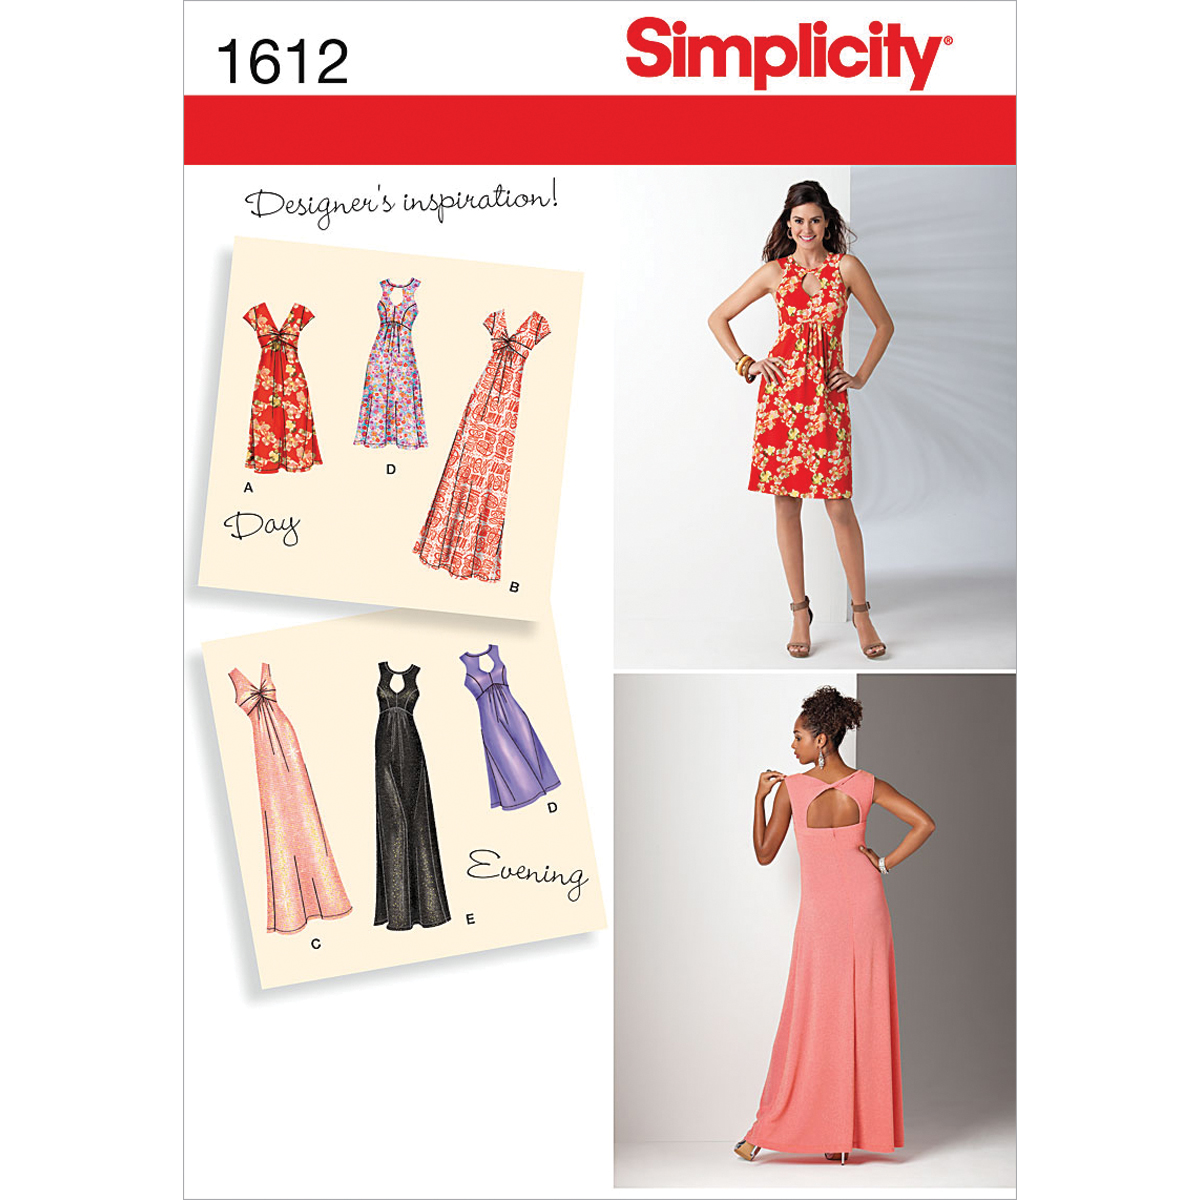 Simplicity Pattern 1612BB 20W-28W -Simplicity Misses Dr